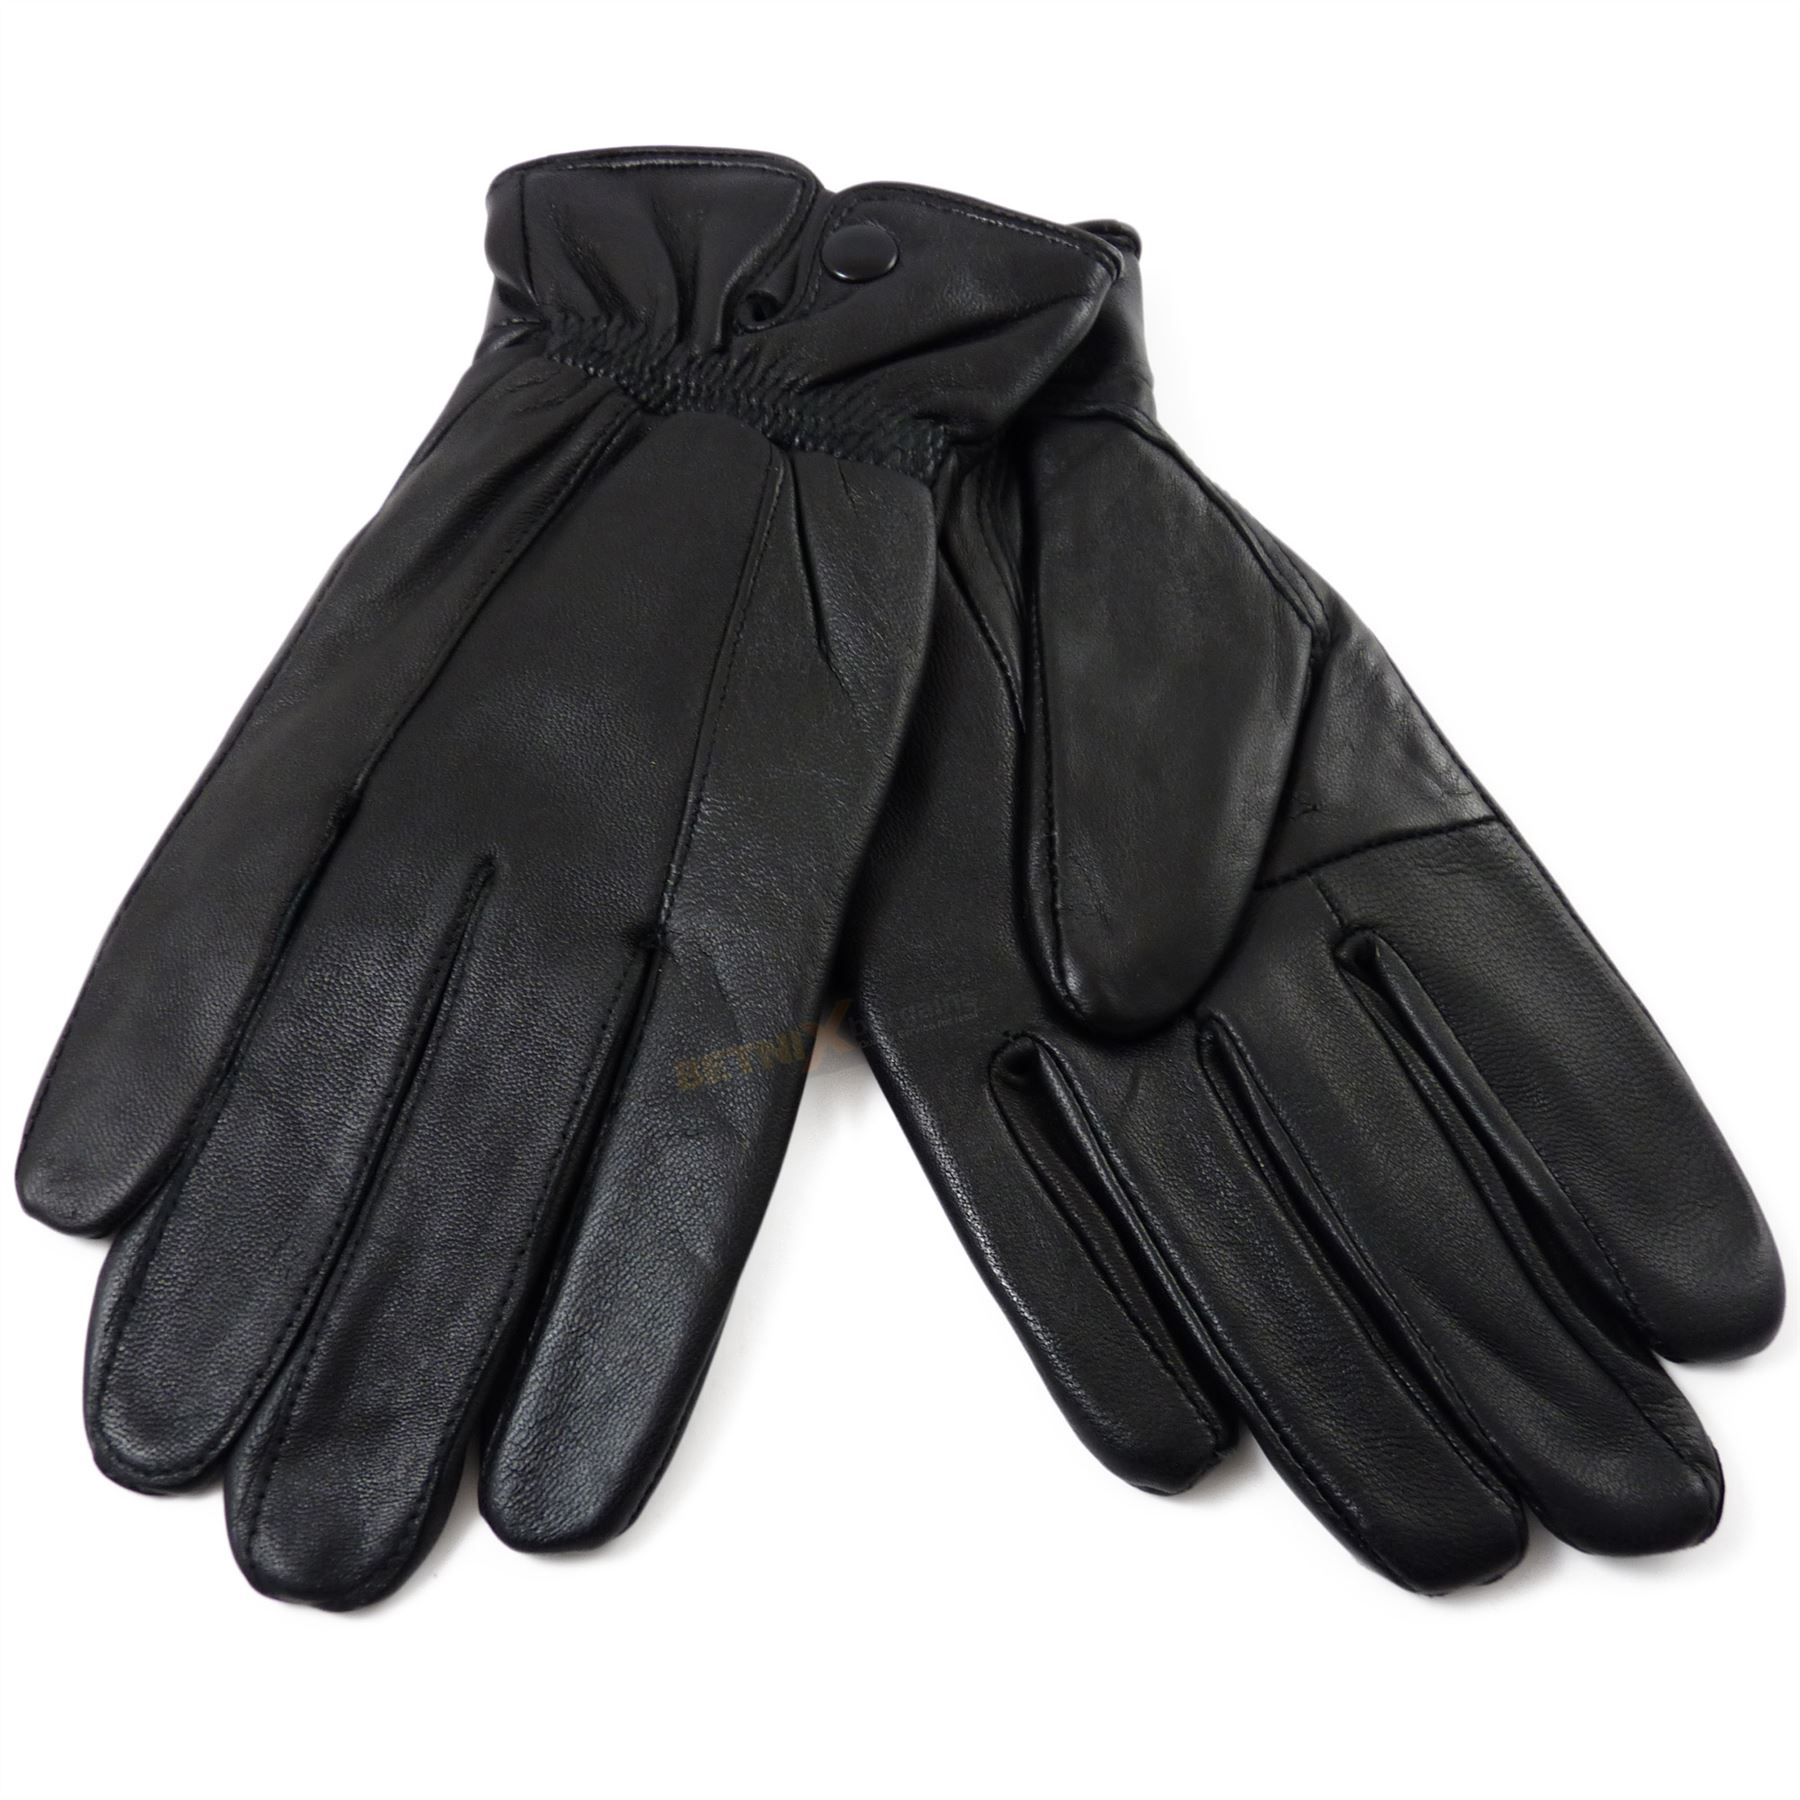 Ladies real leather gloves - Ladies Real Leather Gloves With Button Cuff Quality